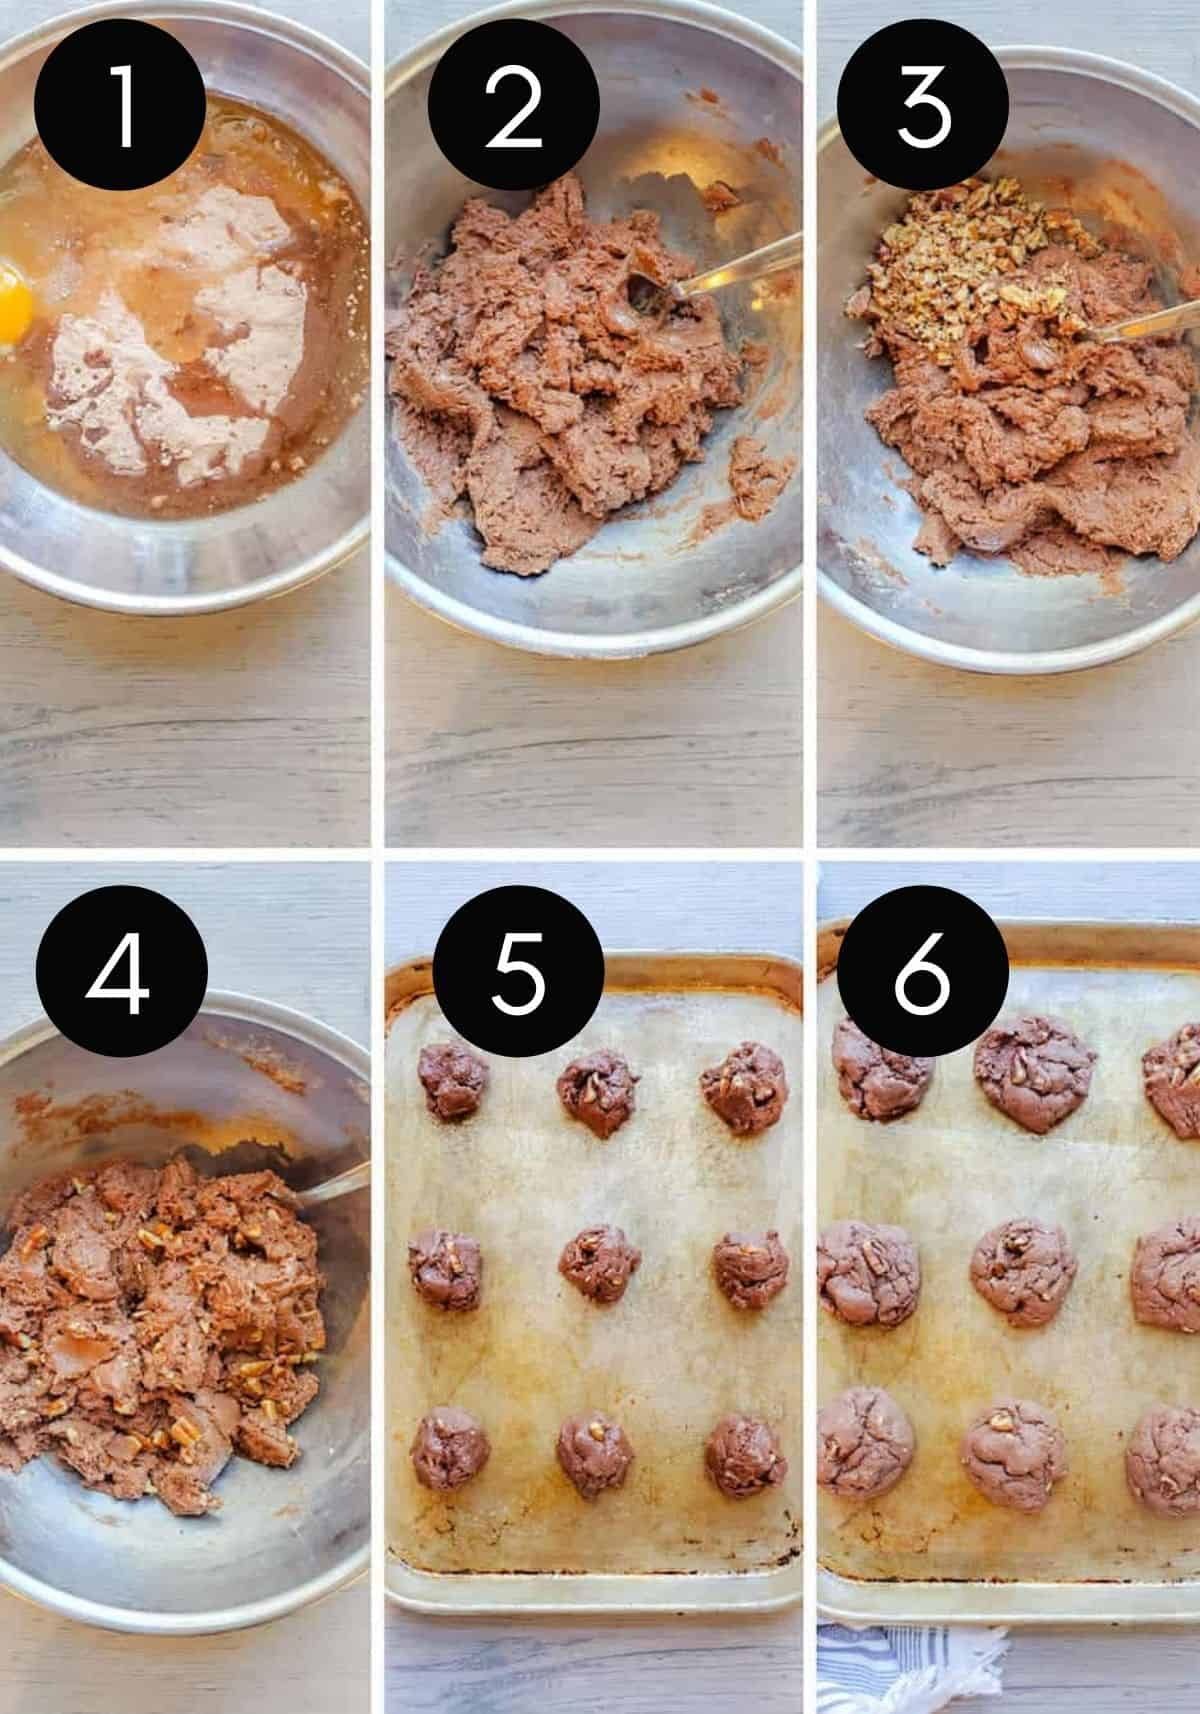 Prep image collage showing 6 images of cookie dough being made then baked.